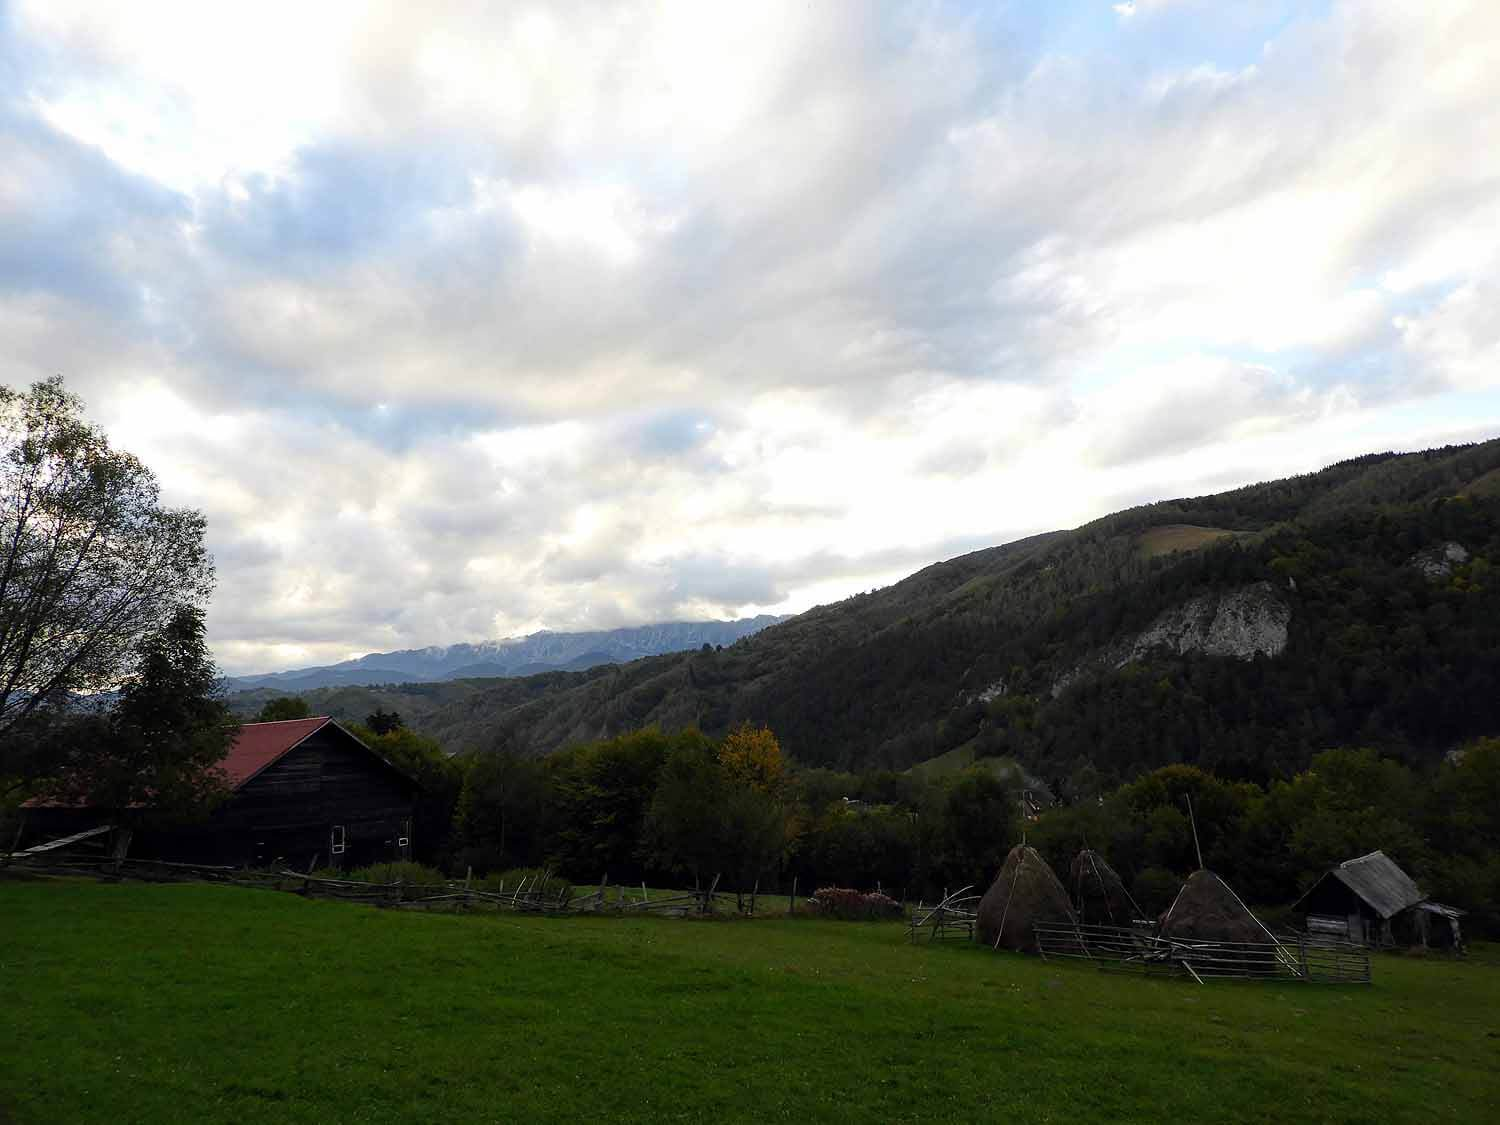 romania-bran-valley-countryside-mountains-forest.jpg